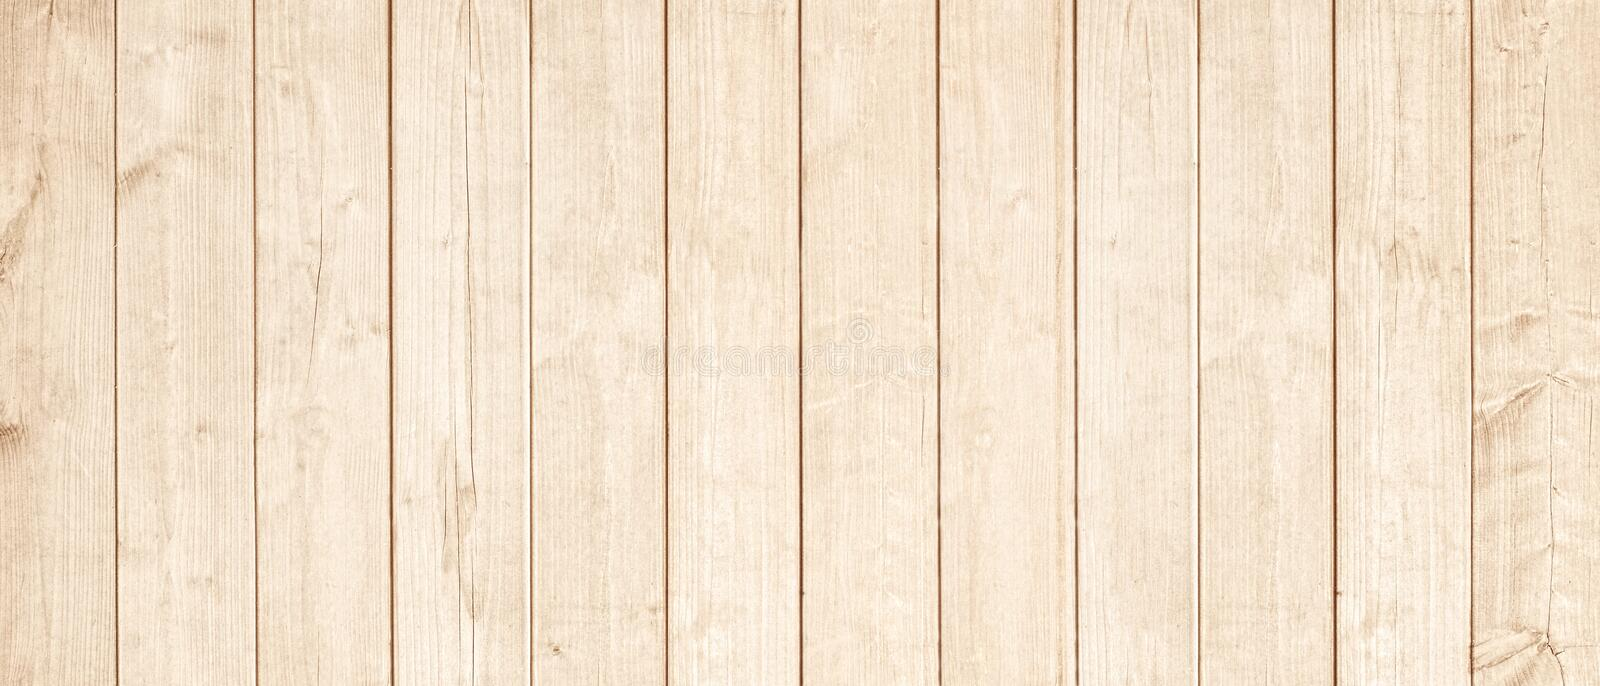 Light brown wooden planks, wall, table, ceiling or floor surface. Wood texture royalty free stock images